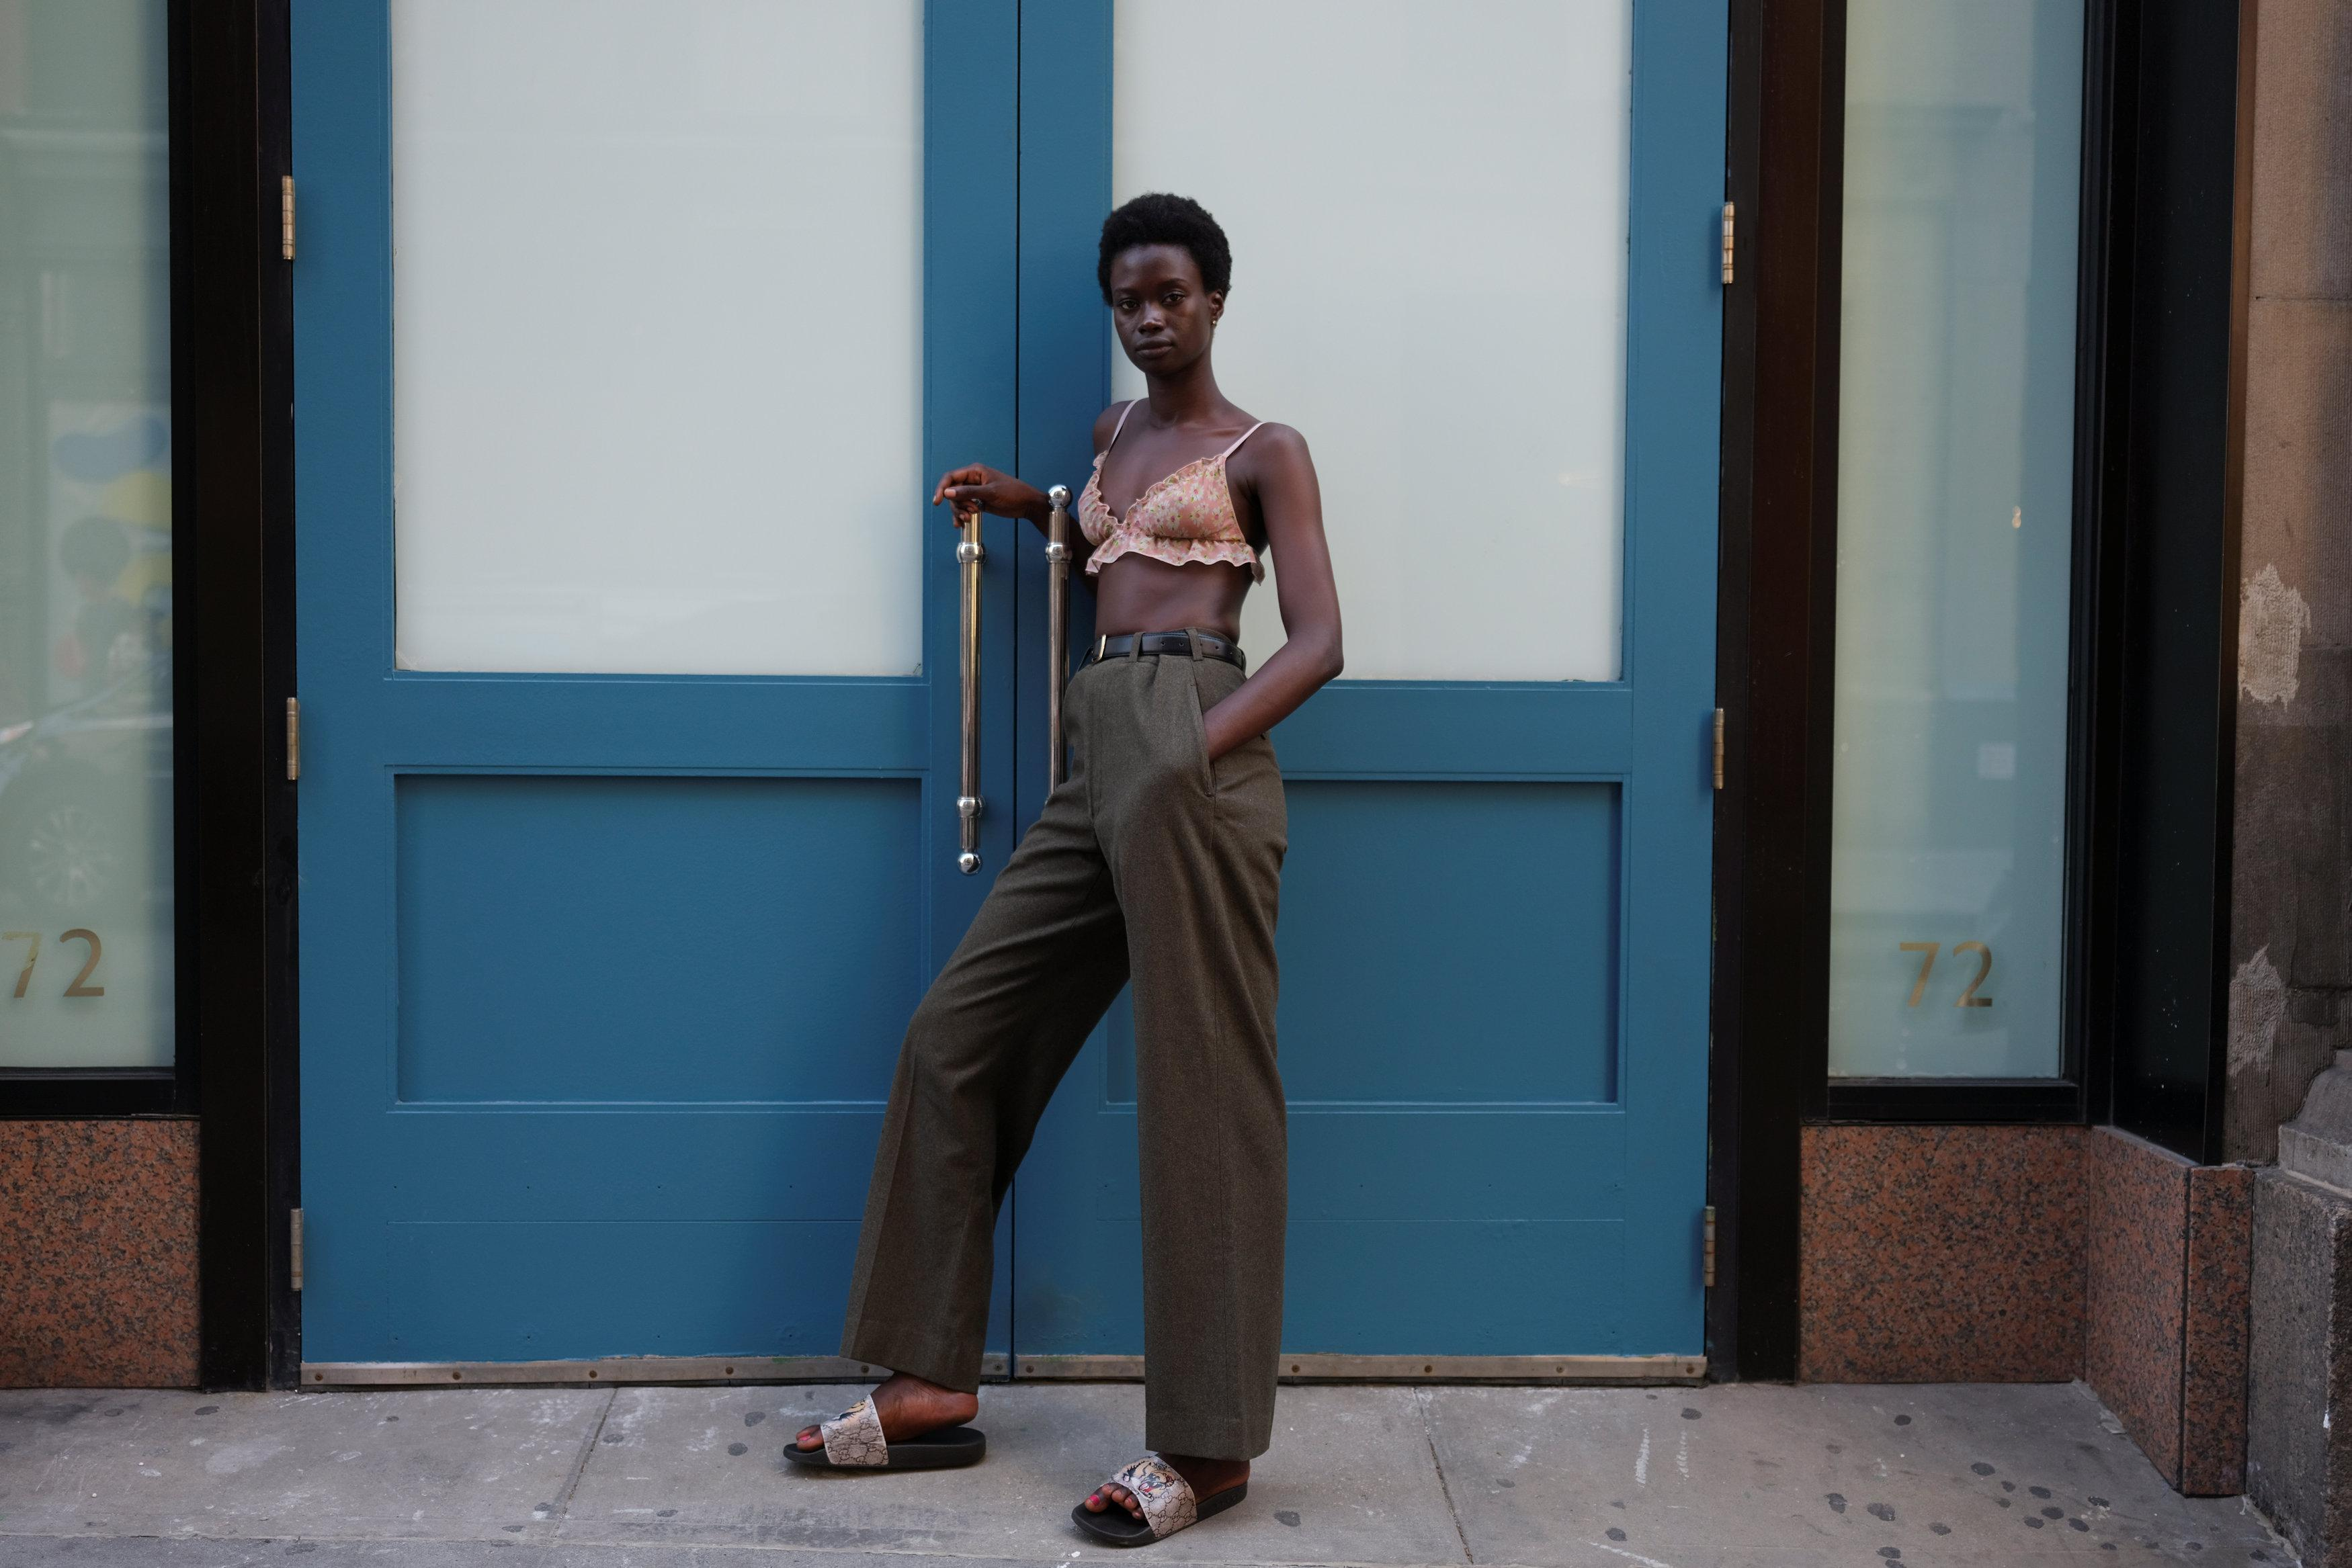 Fatou Jobe, 24, a model based in New York, poses for a portrait in the Manhattan borough of New York, U.S., September 3, 2018.  Caitlin Ochs